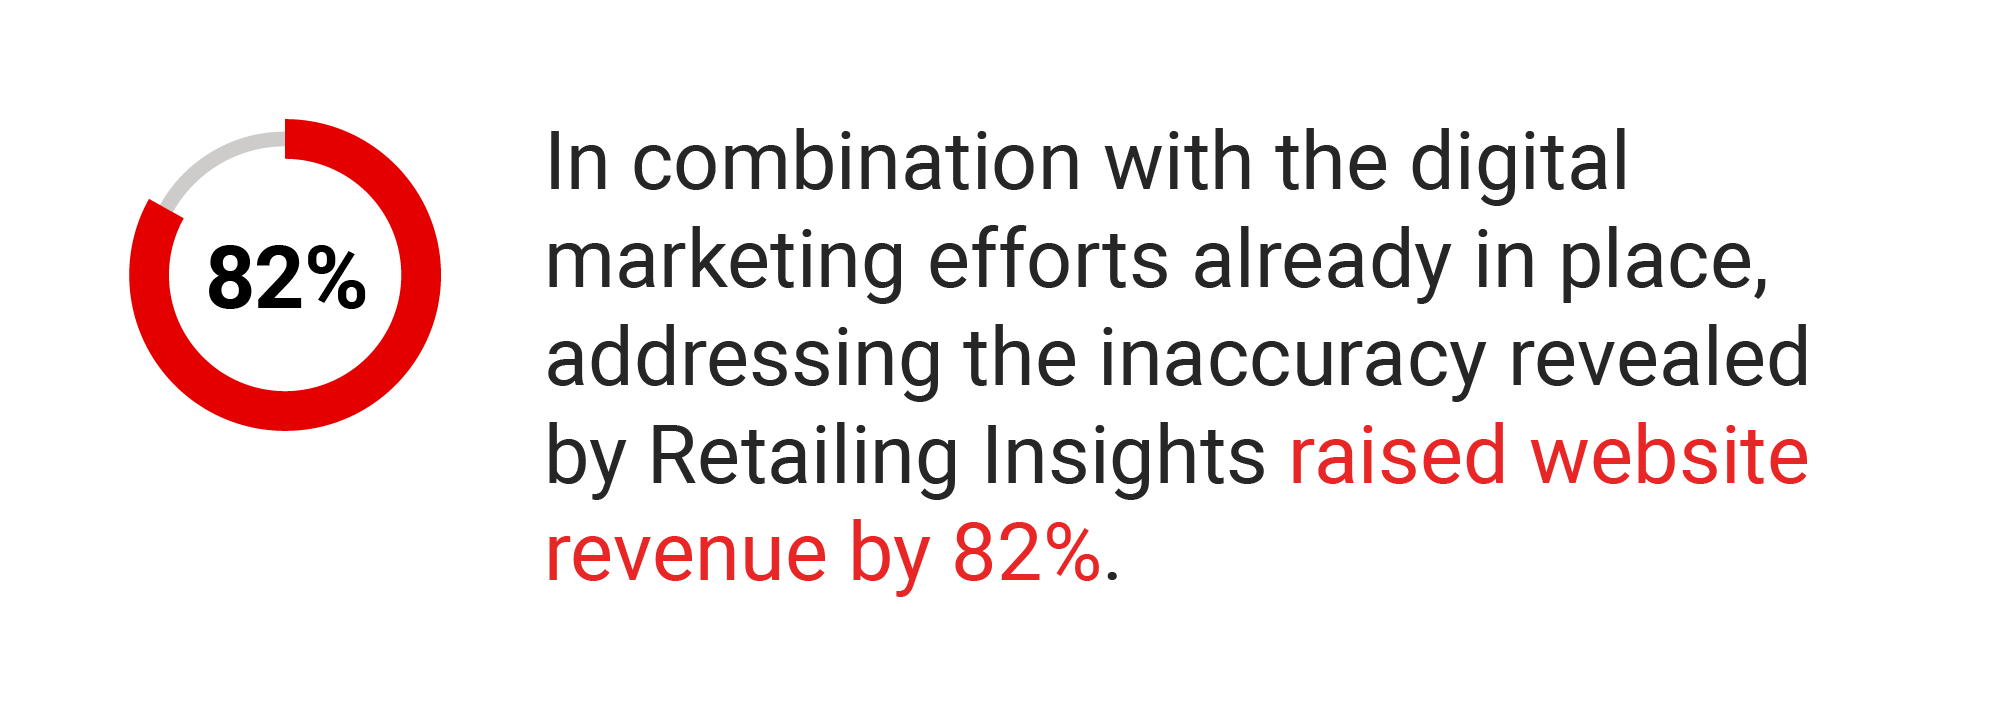 In combination with the digital marketing efforts already in place, addressing the inaccuracy revealed by Retailing Insights raised website revenue by 82%